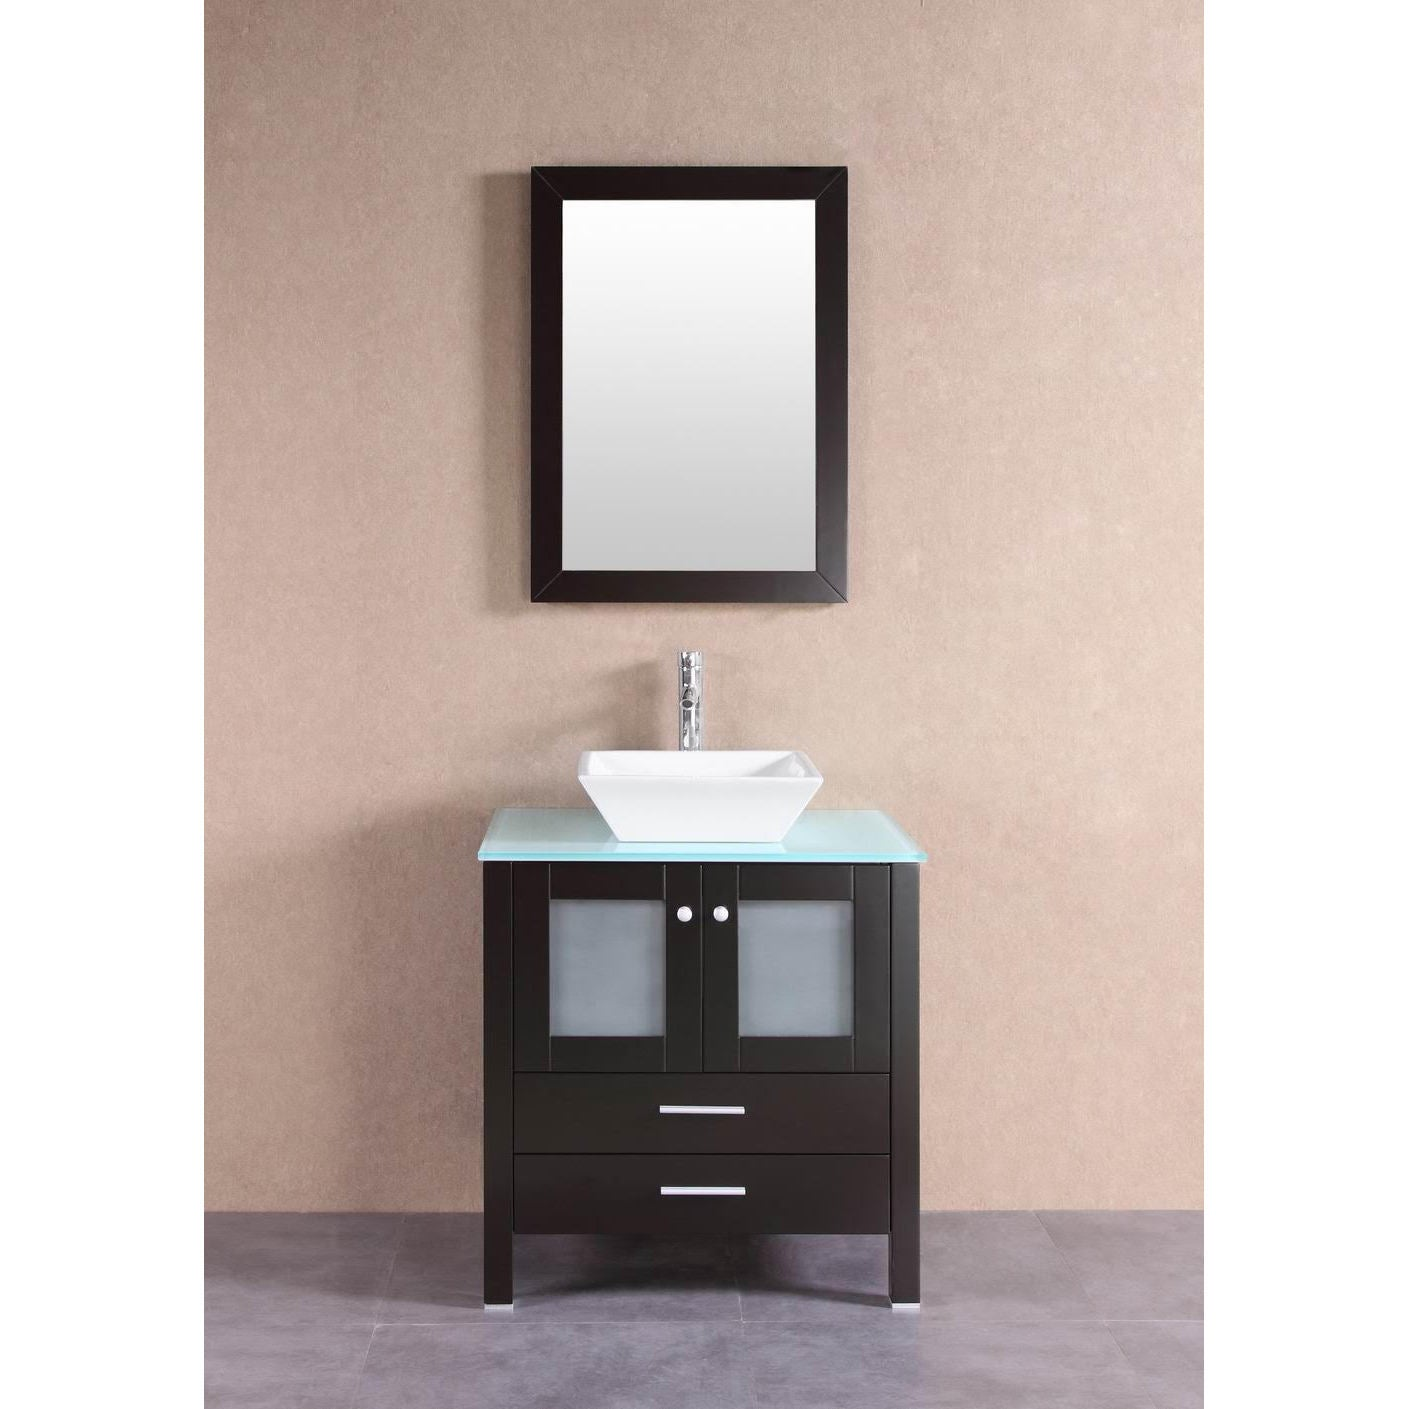 30 Inch Wide Belevedere Bath Modern Espresso Bathroom Vanity With Glass Top And Raised Glass Sink Solid Wood With Soft Close Doors And Drawer Tools Home Improvement Kitchen Bath Fixtures